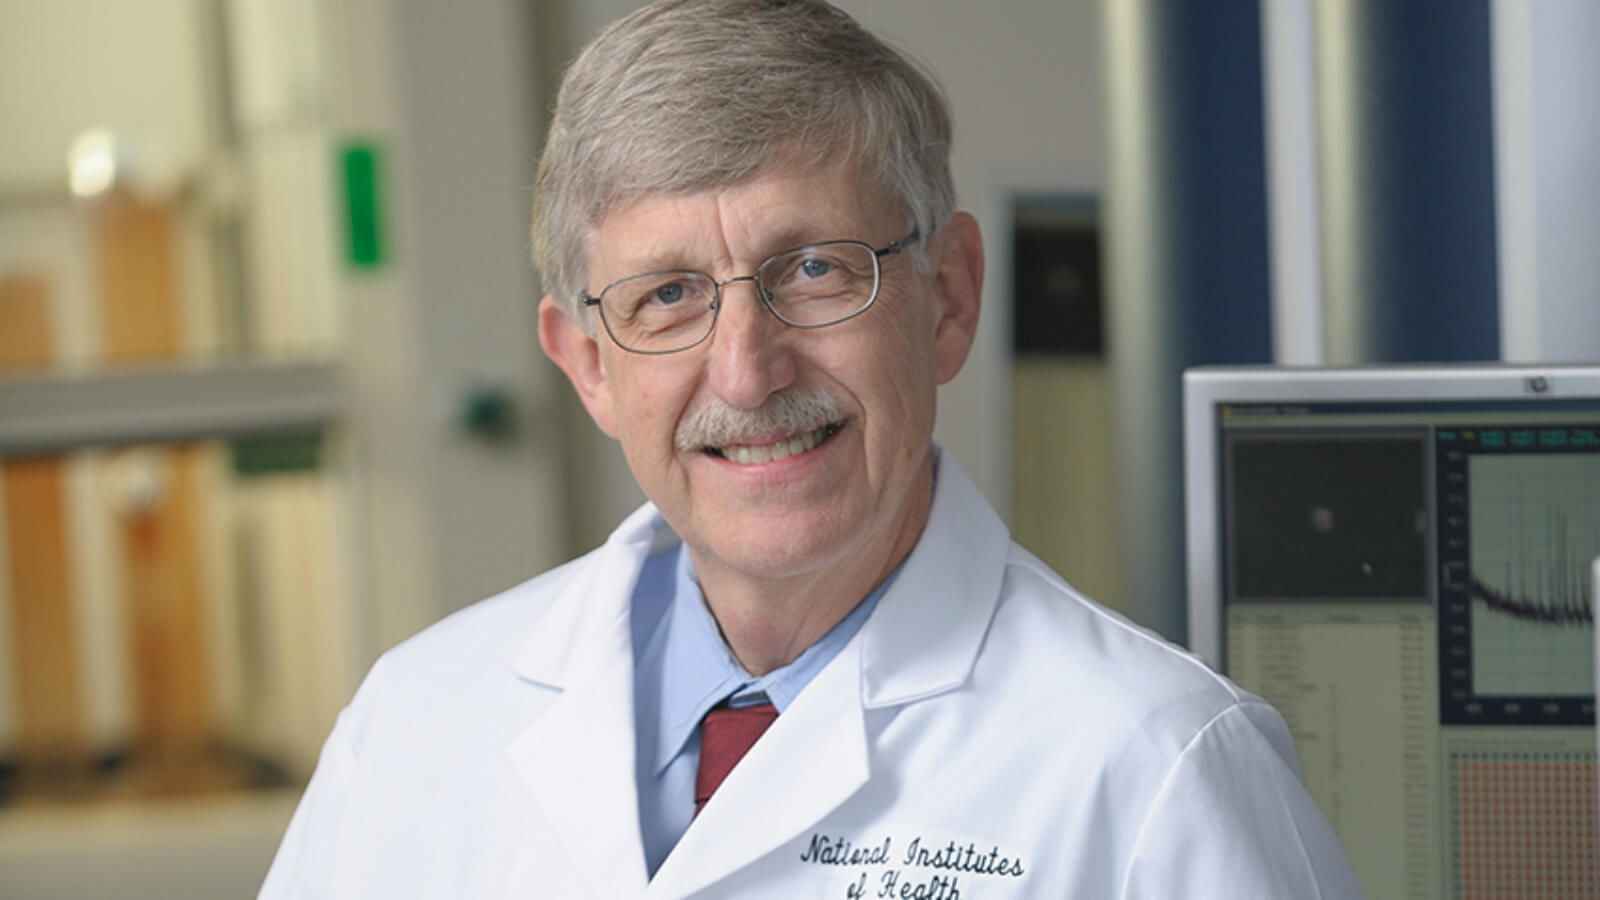 Francis s collins photo 1600x900